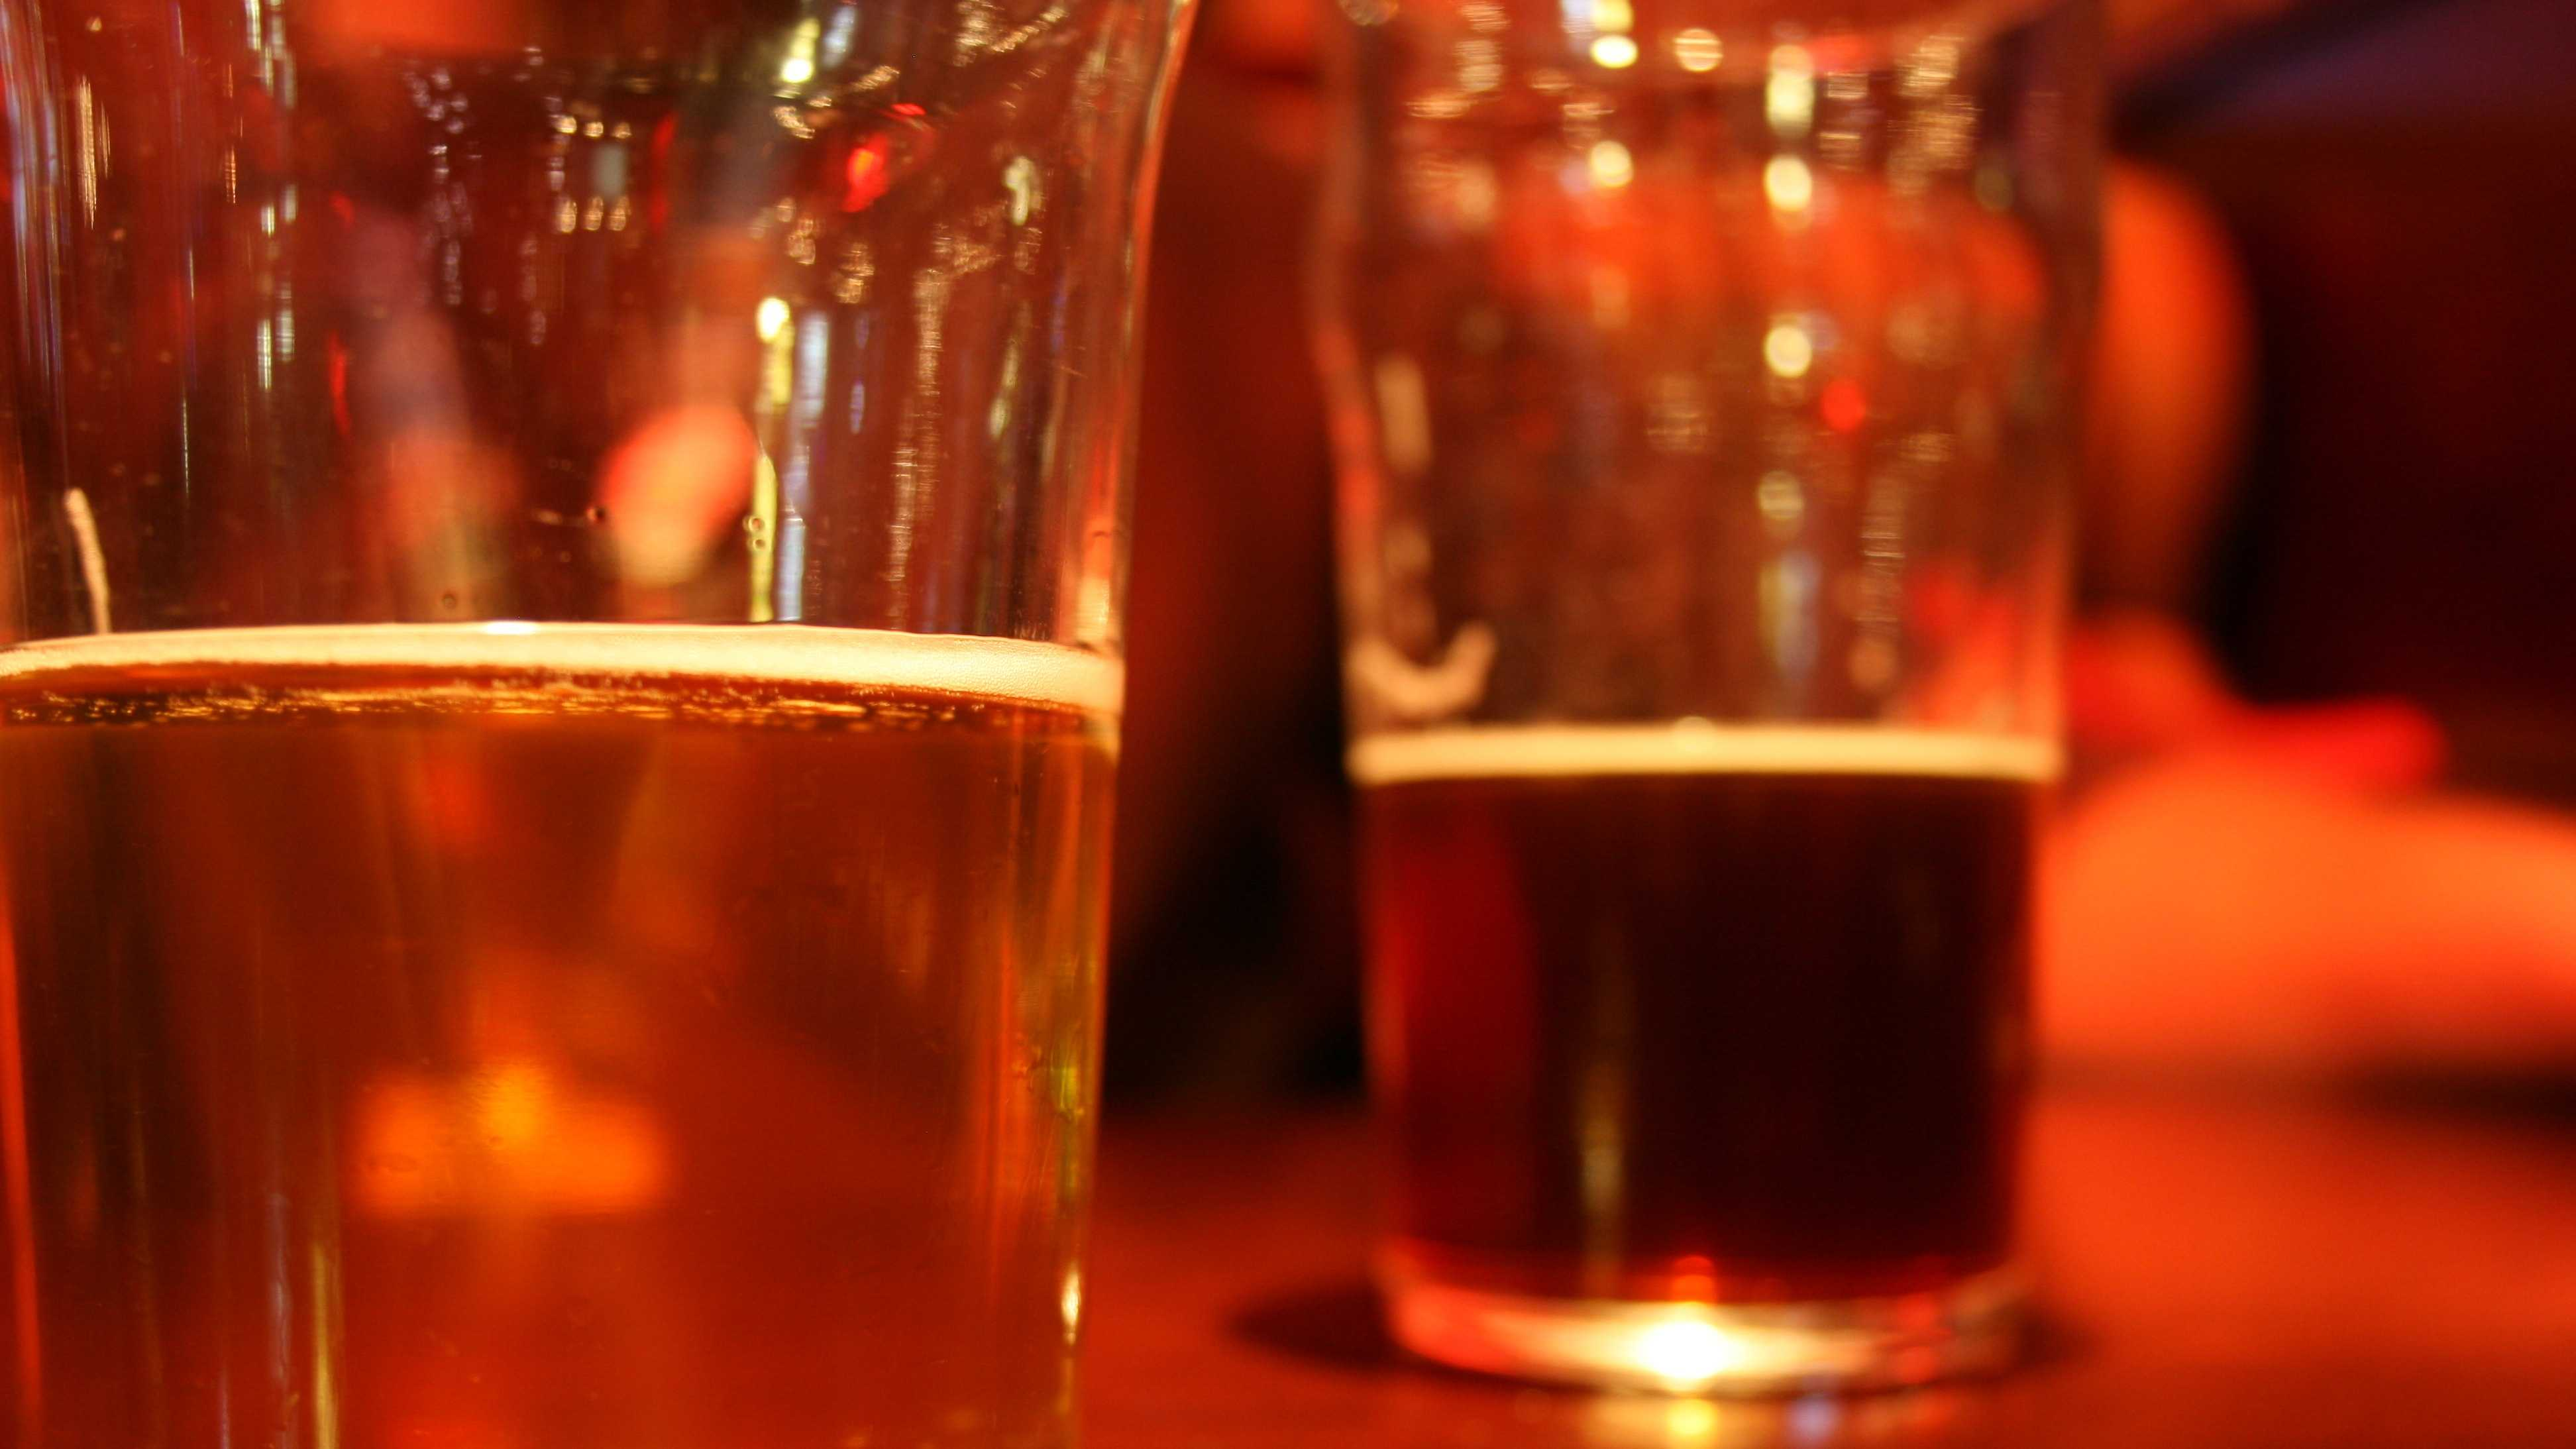 As Americans are celebrating the onset of fall with Oktoberfest events, TripAdvisor has announced the nation's top 10 brewery tours.